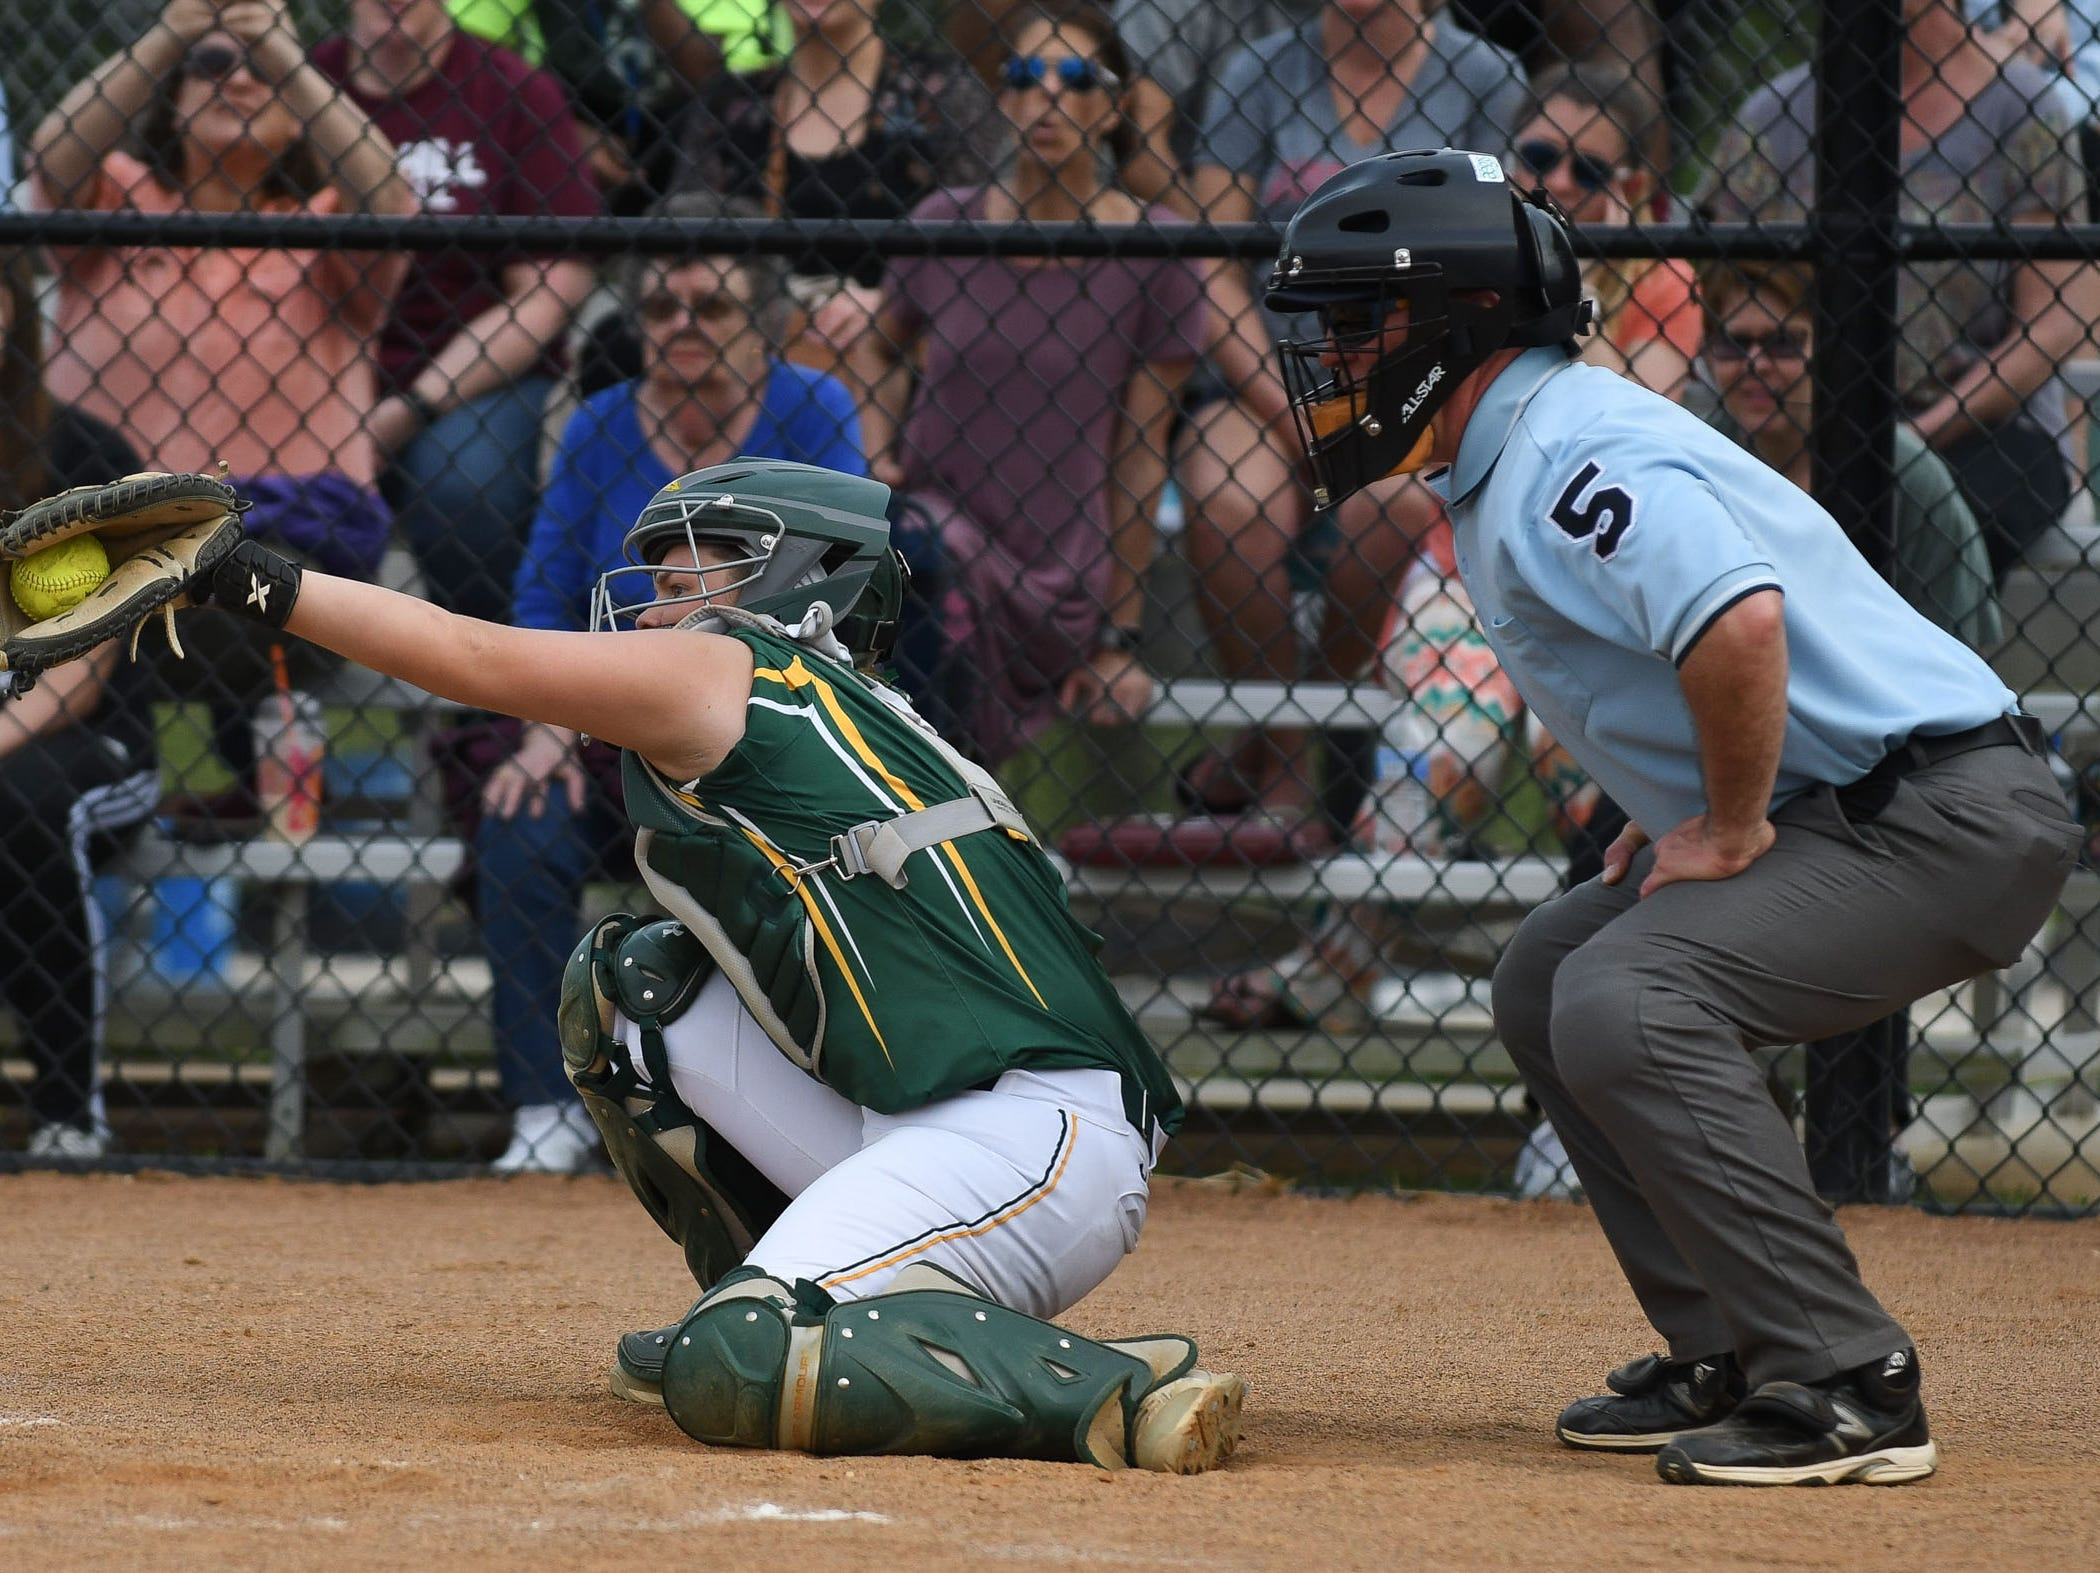 Mardela's Logan Gengo behind the plate against Snow Hill on Monday, April 8, 2019 in Snow Hill, Md.